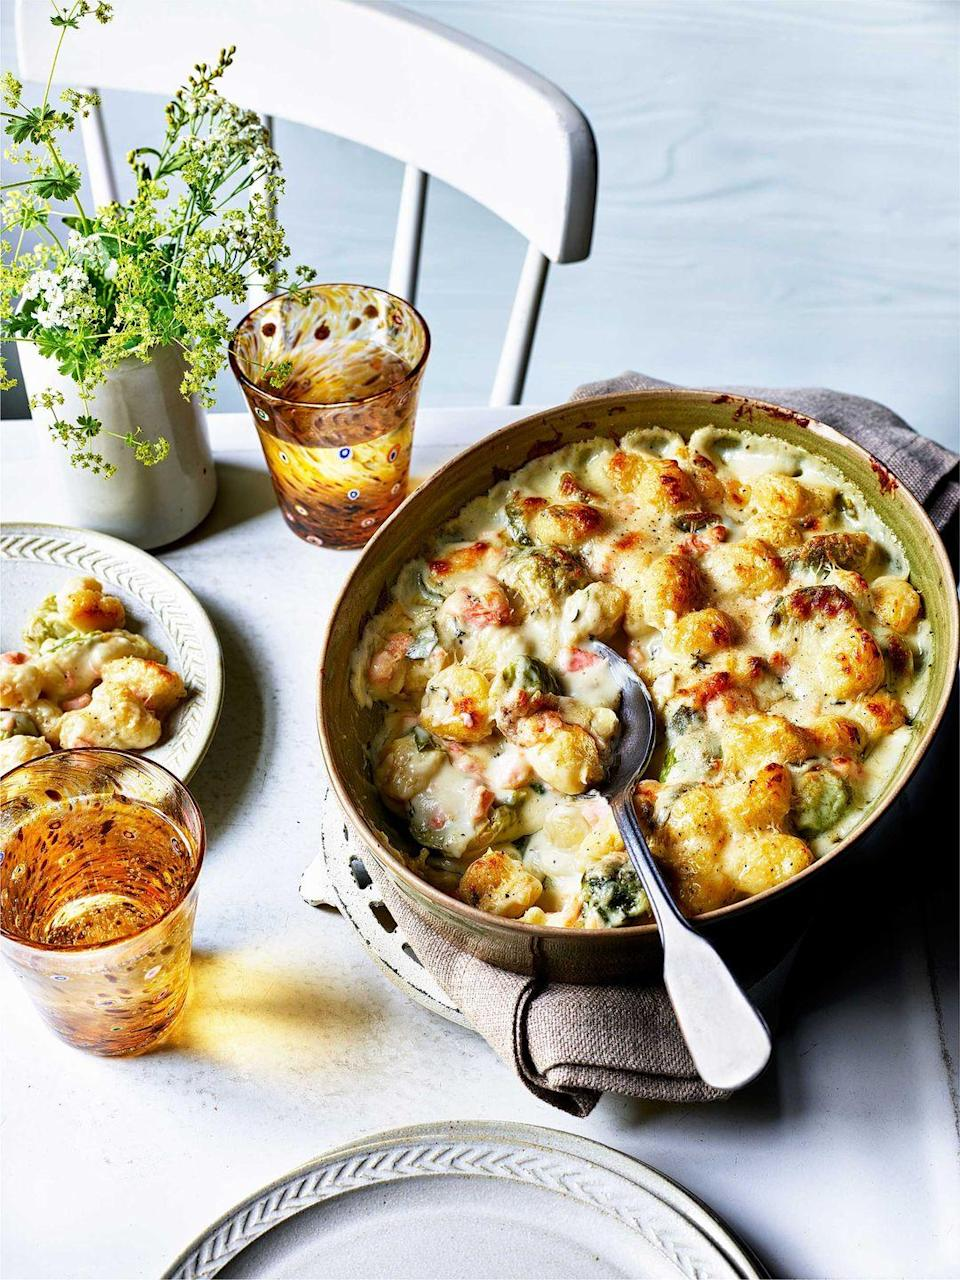 """<p>A rich and hearty dish that's just what's needed on a chilly evening. Use Cheddar if you don't have Gruyère.</p><p><strong>Recipe: <a href=""""https://www.goodhousekeeping.com/uk/food/recipes/a26006524/salmon-gnocchi-gratin/"""" rel=""""nofollow noopener"""" target=""""_blank"""" data-ylk=""""slk:Creamy salmon gnocchi gratin"""" class=""""link rapid-noclick-resp"""">Creamy salmon gnocchi gratin</a></strong></p>"""